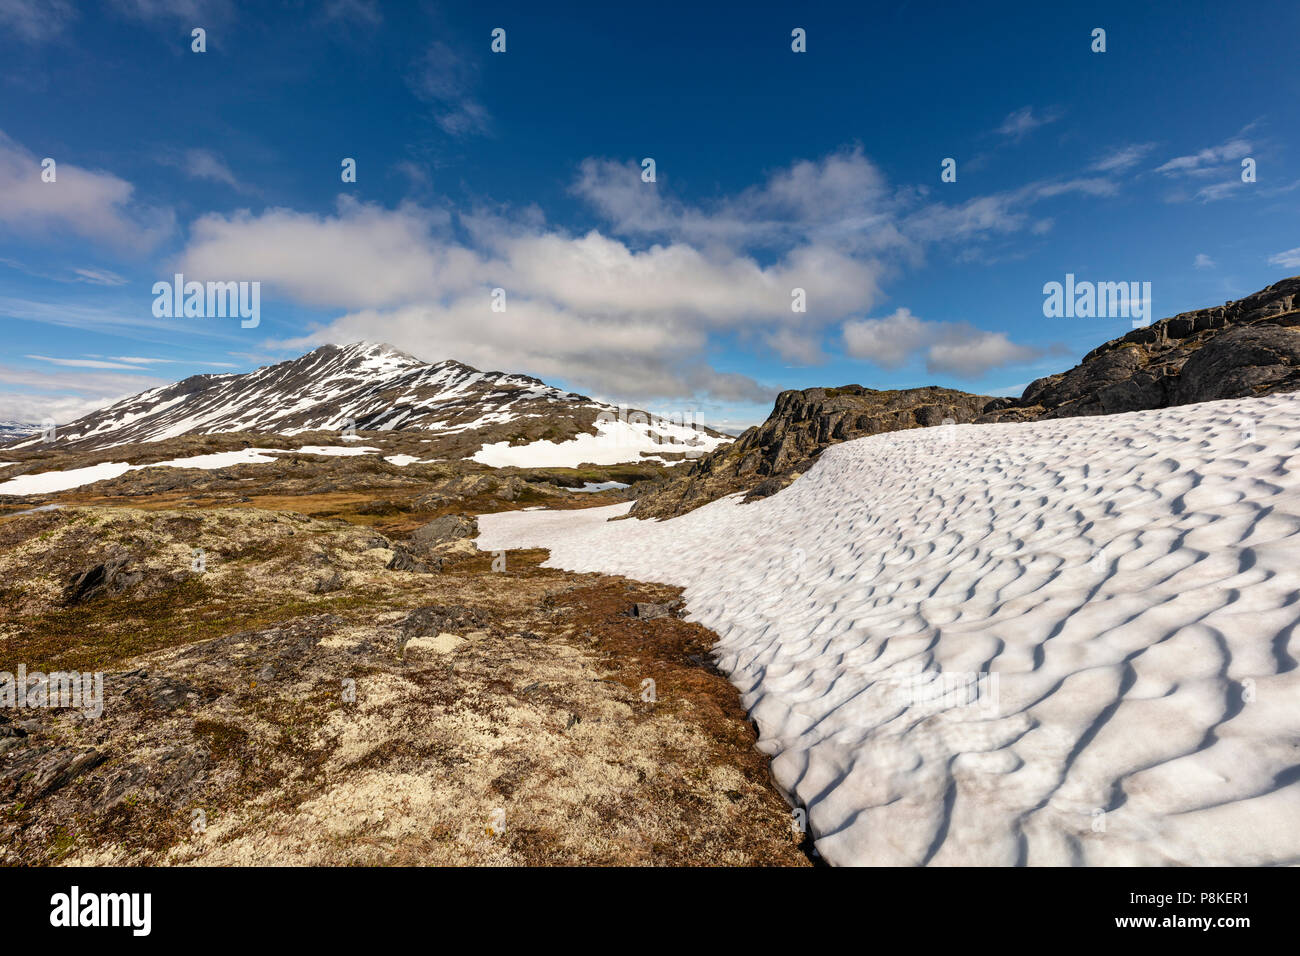 Remnant snowfield at Thompson Pass near Valdez in Southcentral Alaska. - Stock Image